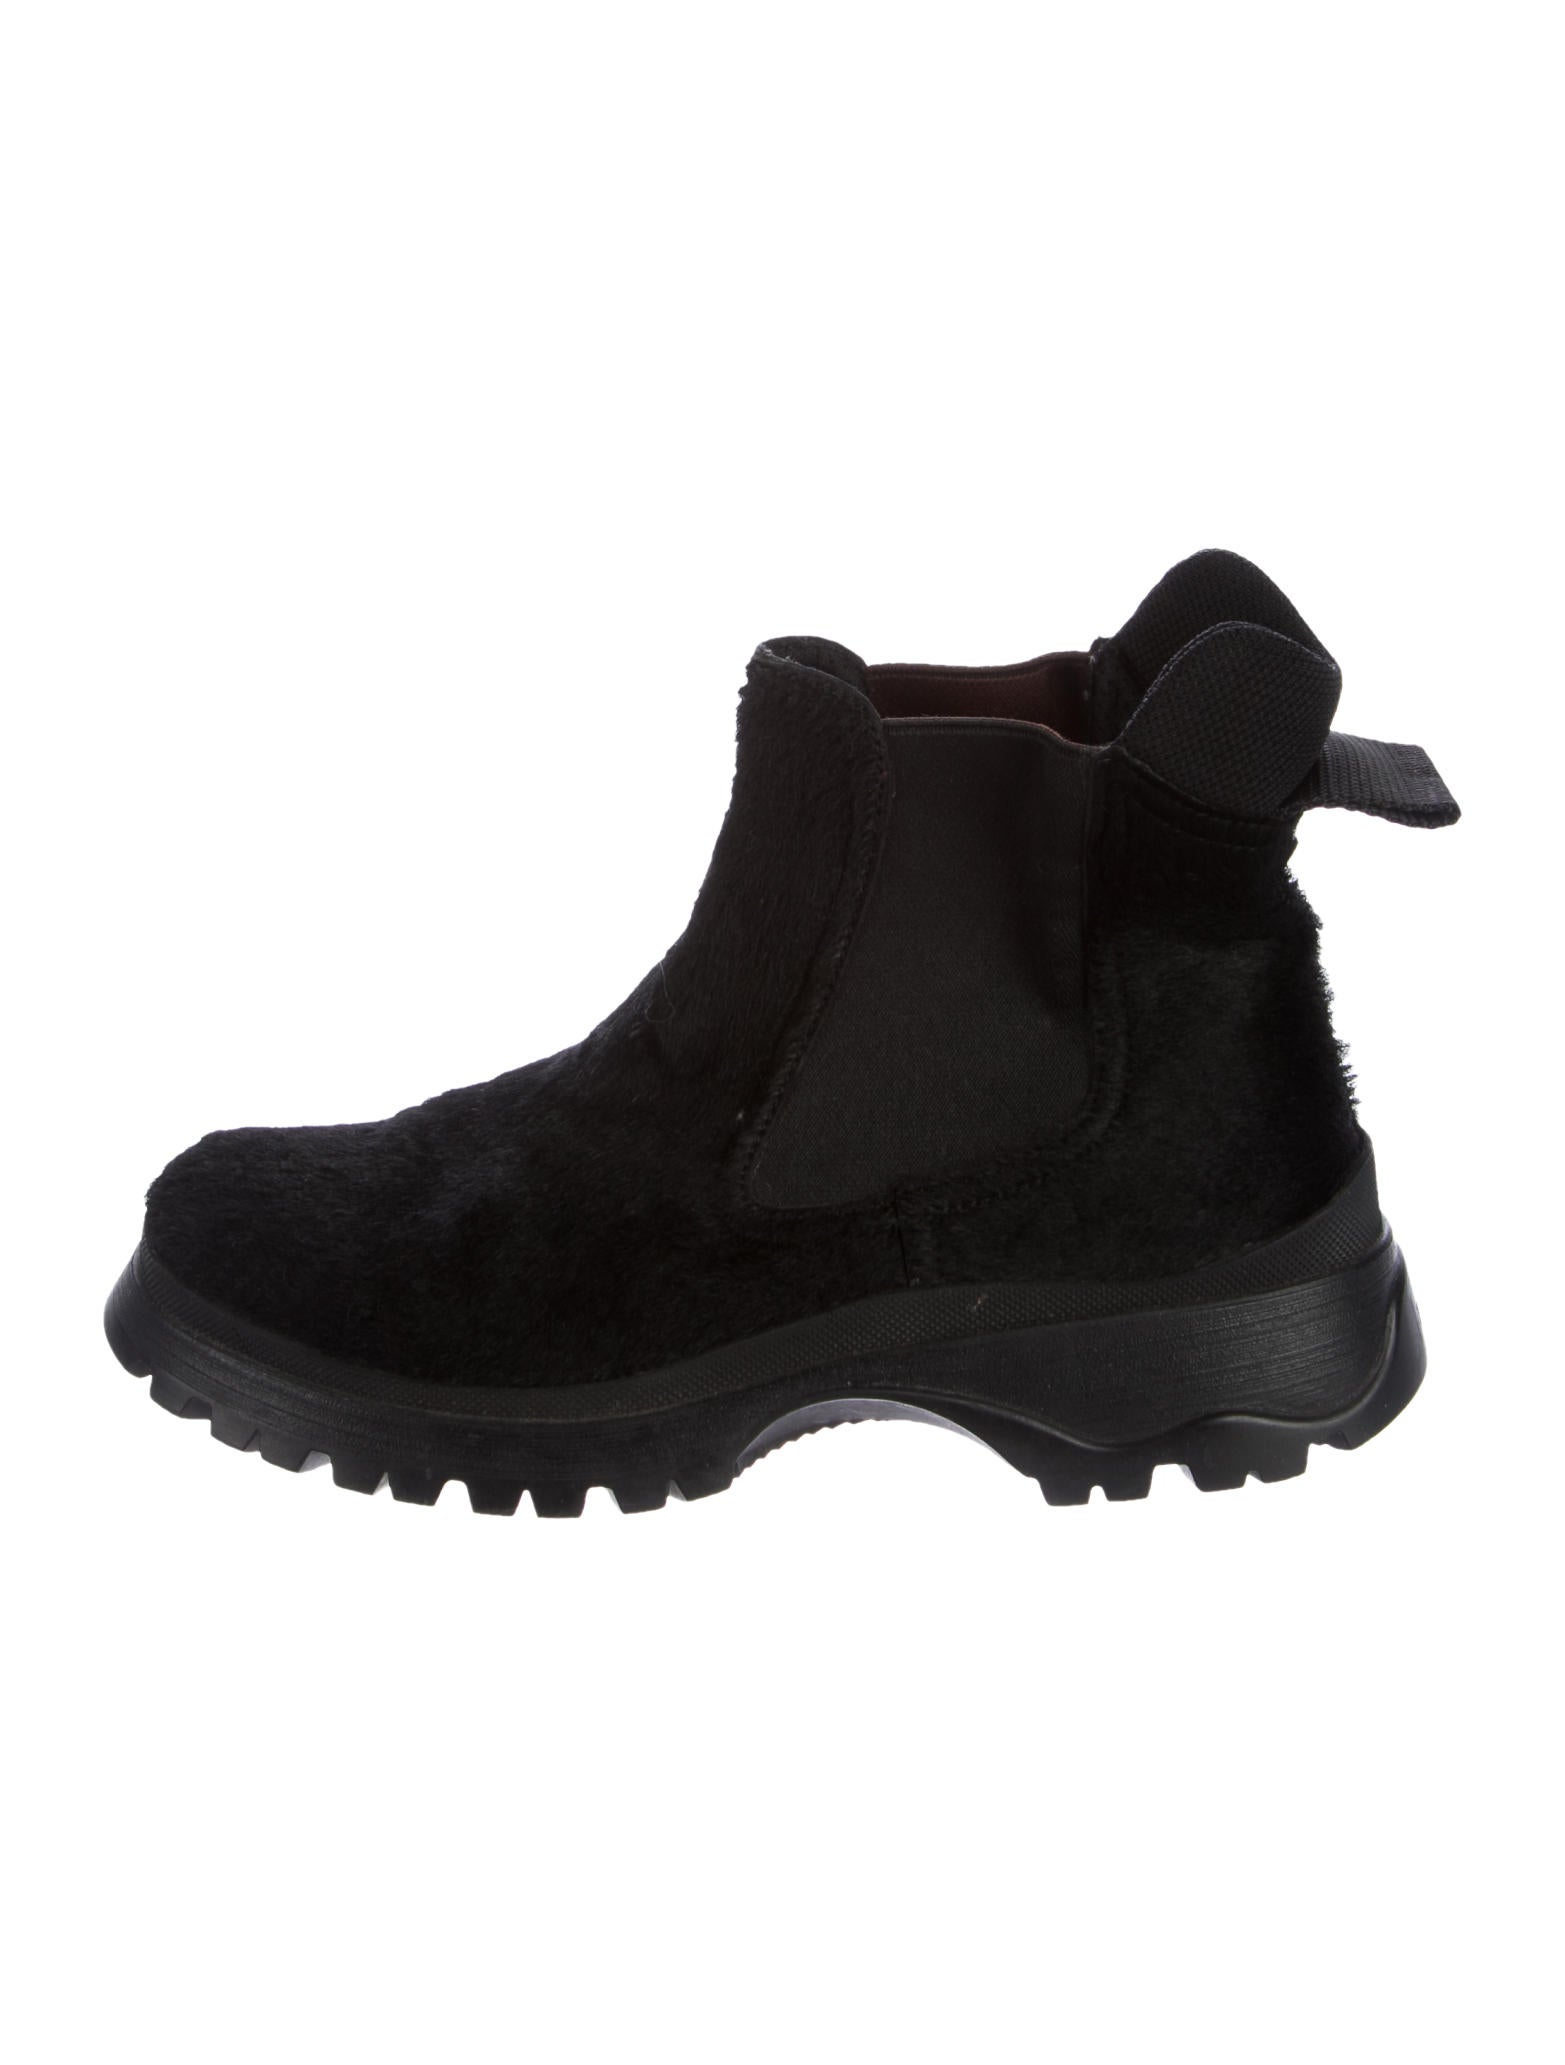 outlet free shipping outlet best wholesale Prada Sport Ponyhair Round-Toe Ankle Boots sale 2014 new shop for 7GNEg6klP